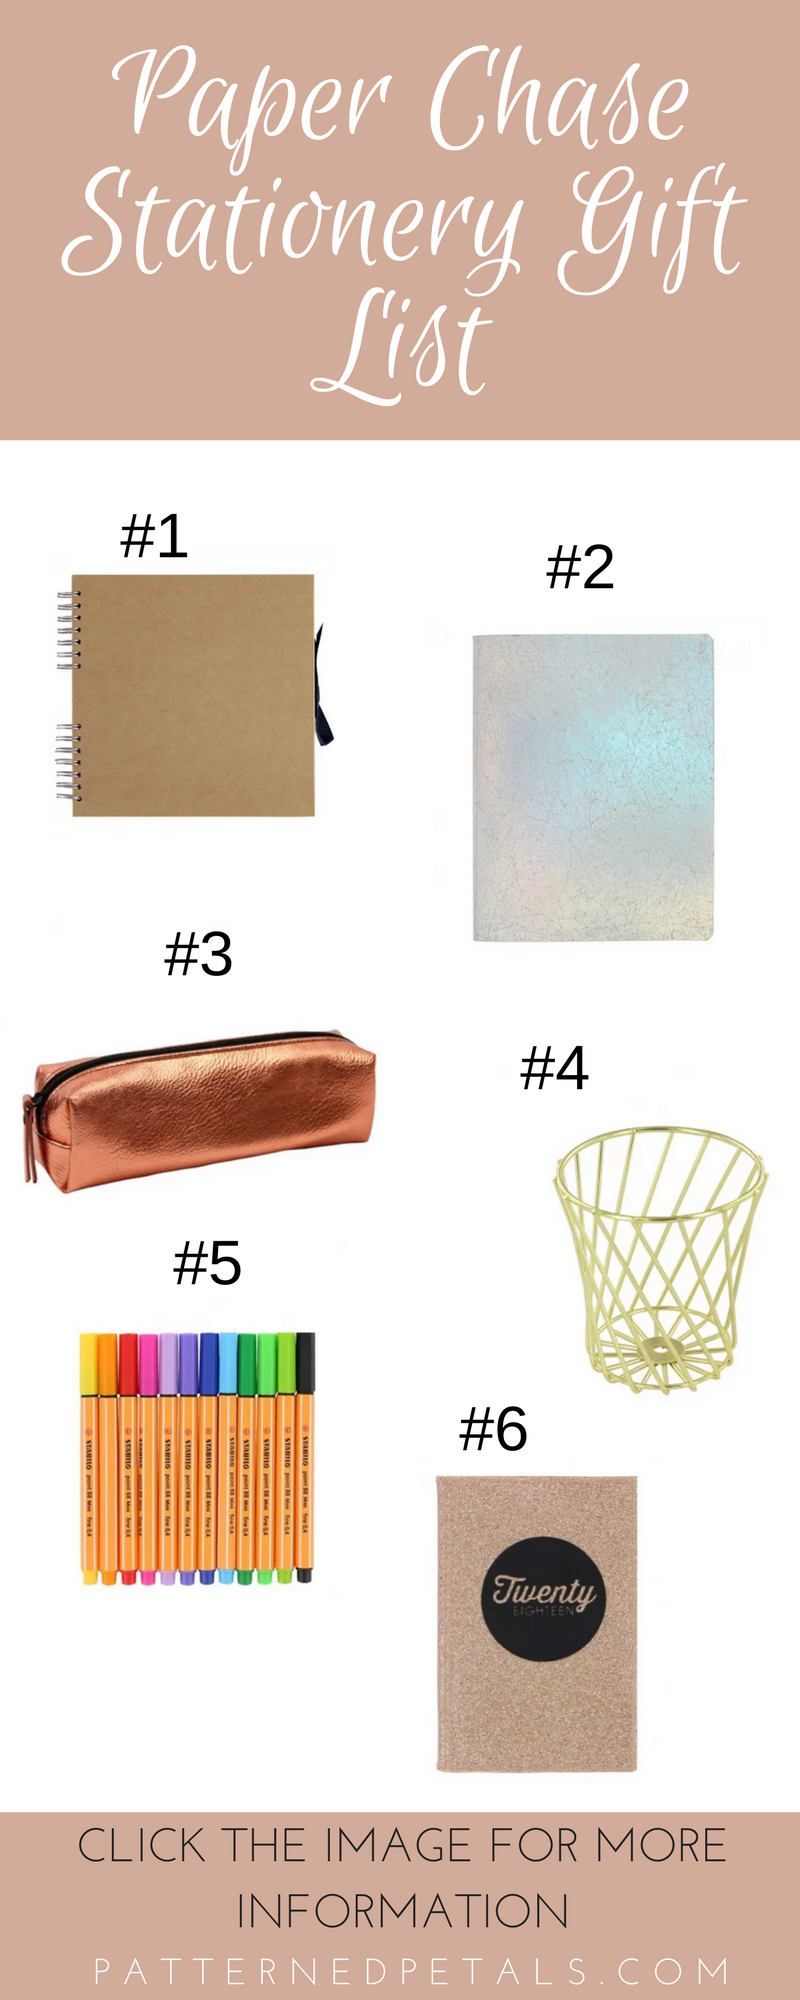 Paper Chase Gift List